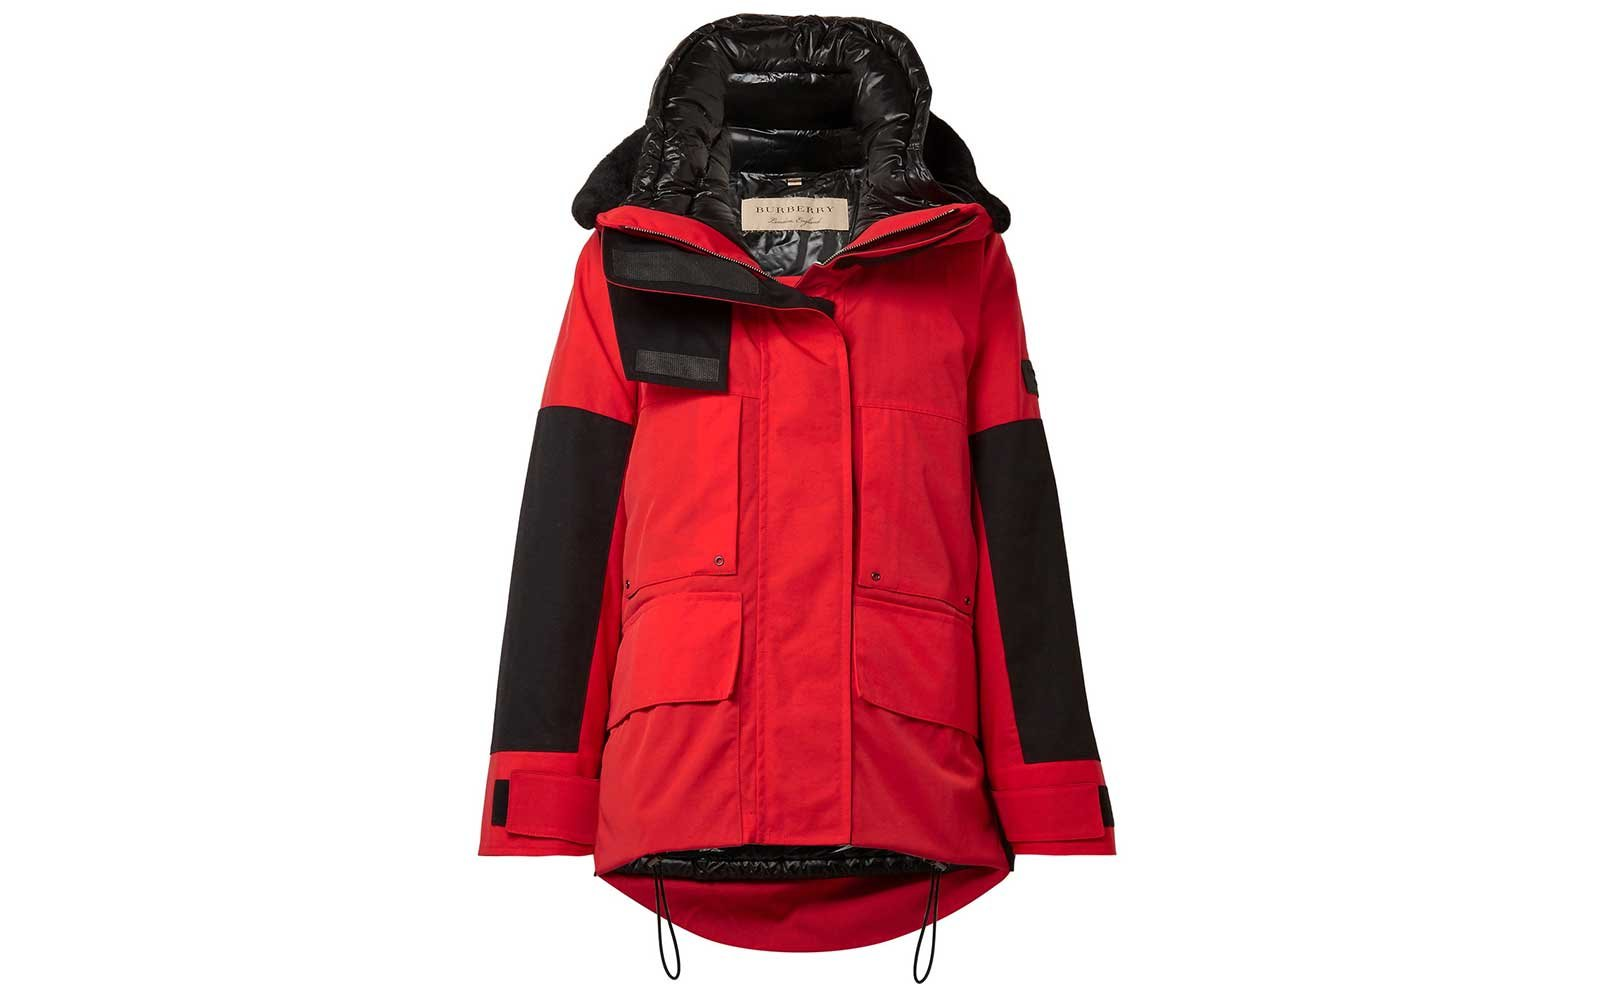 Red utility parka from Burberry